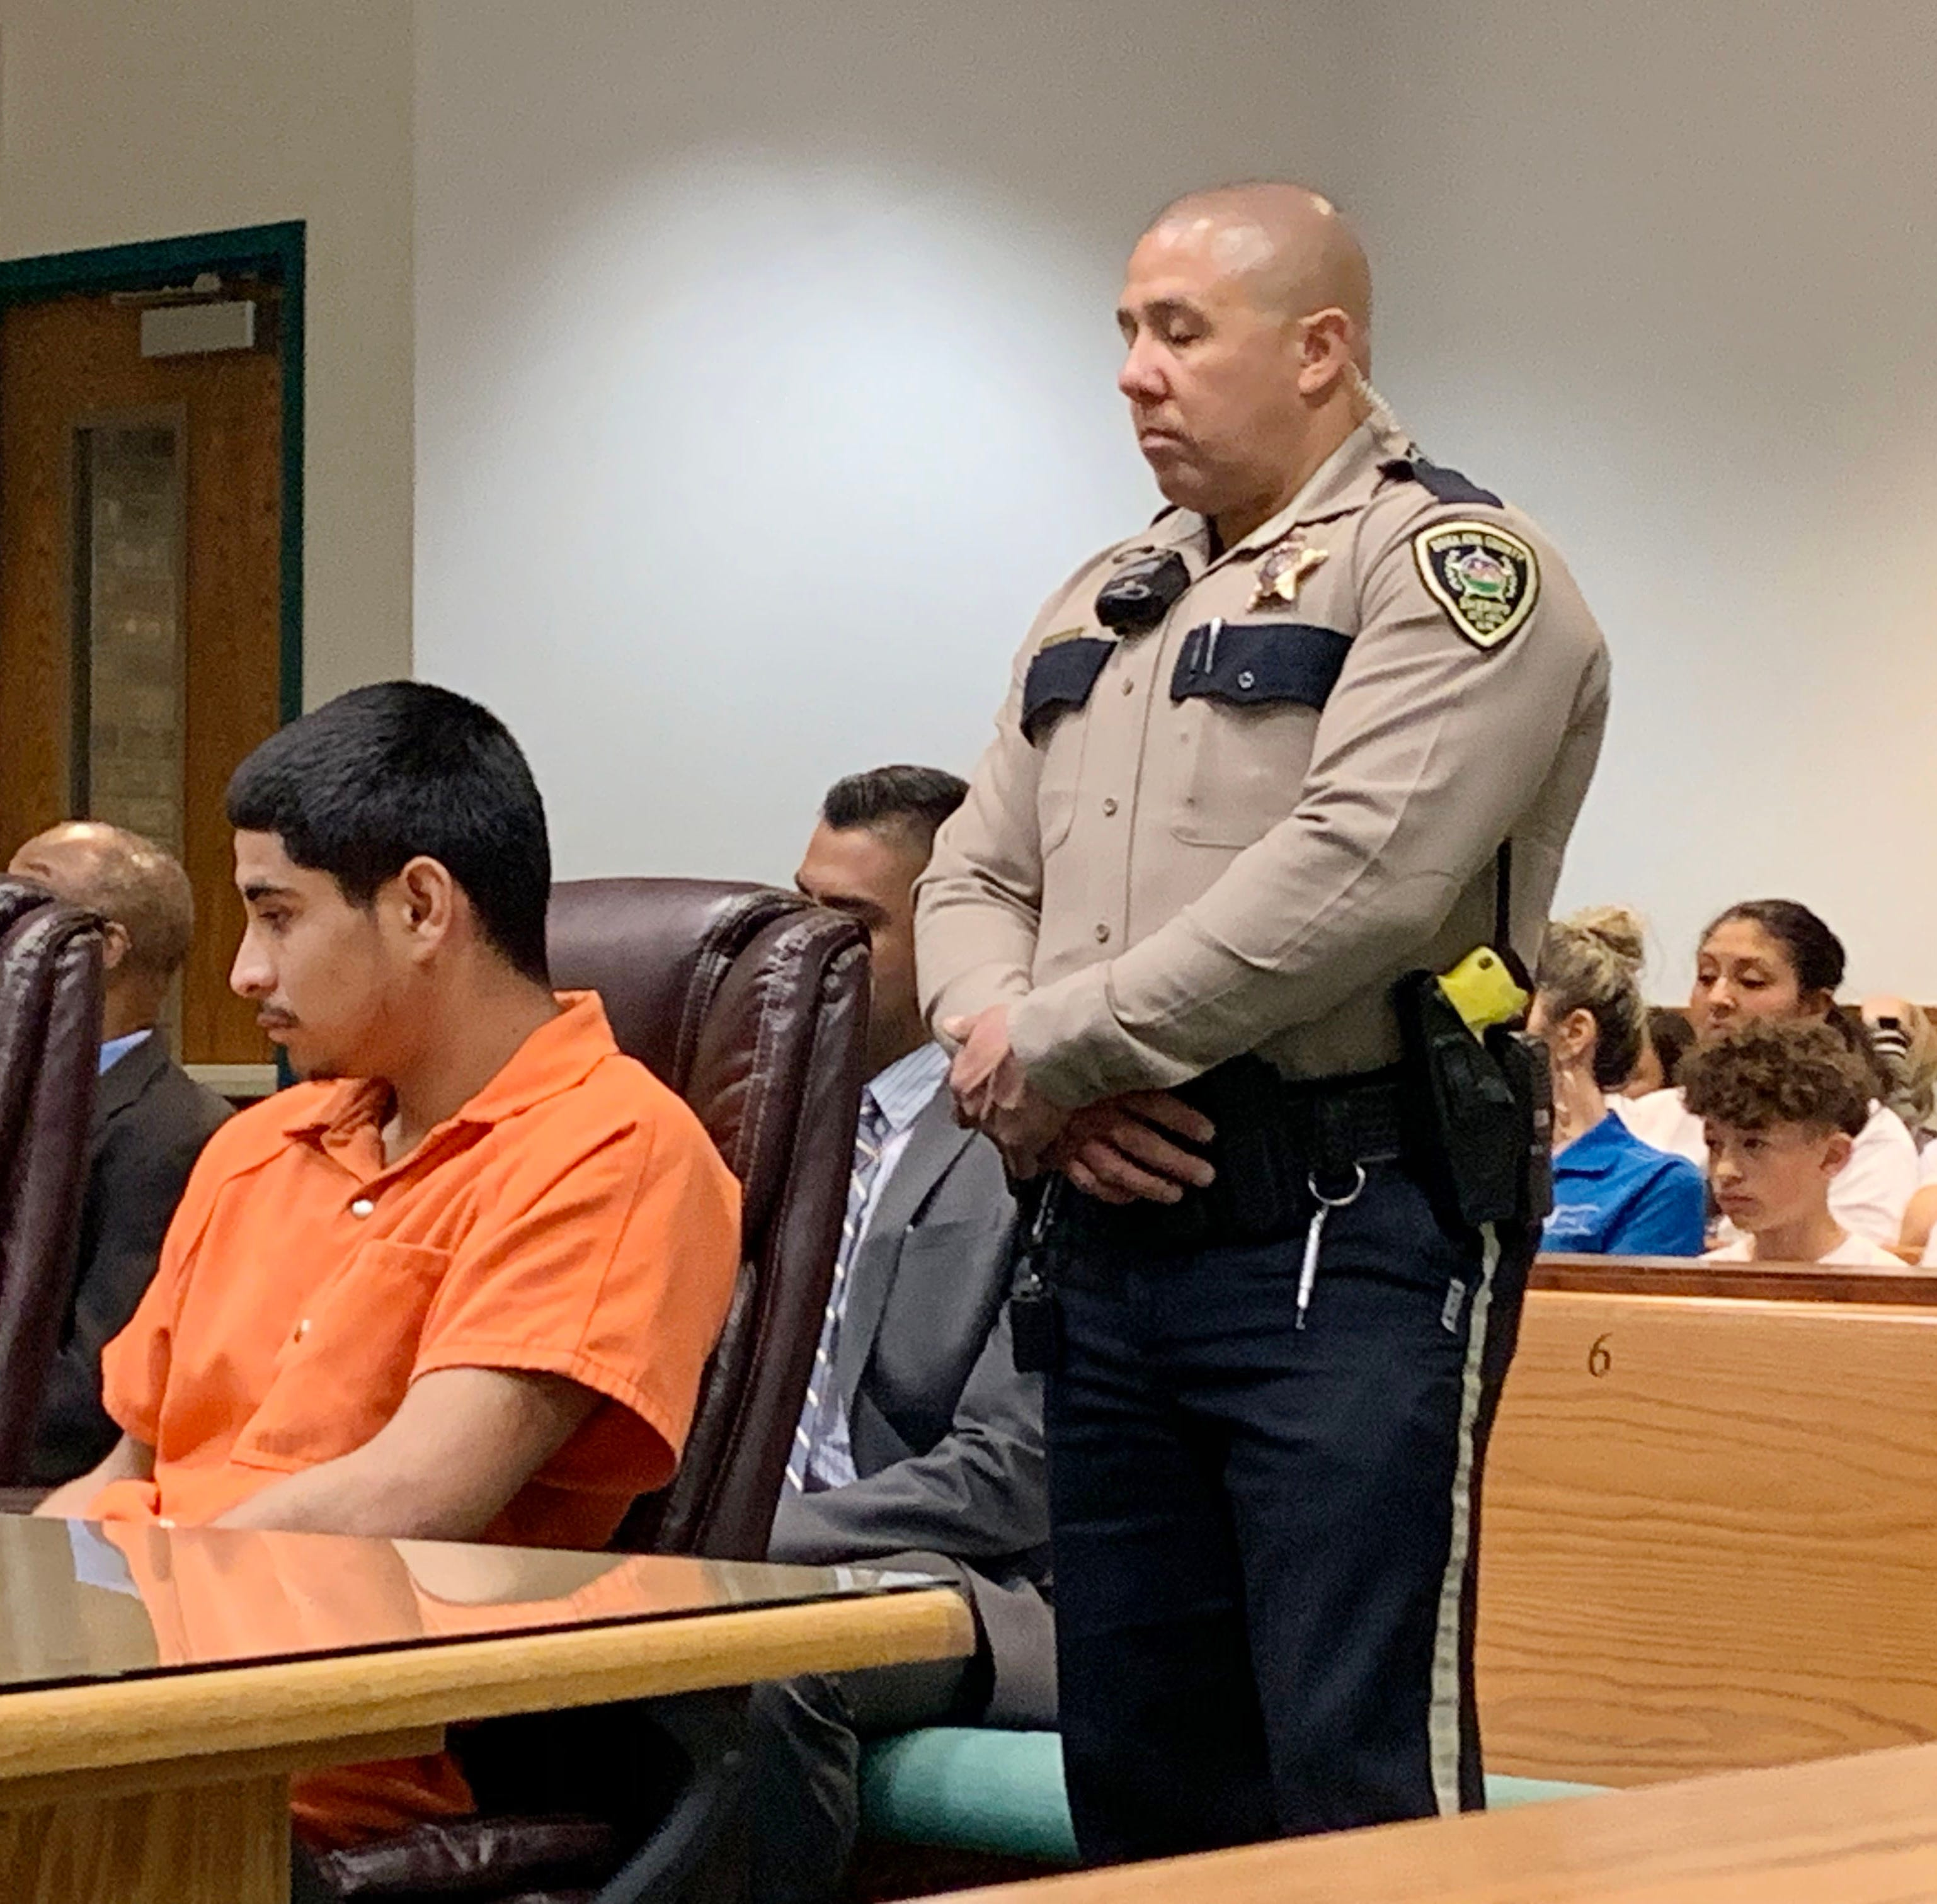 Vehicular homicide suspect to remain in jail until trial